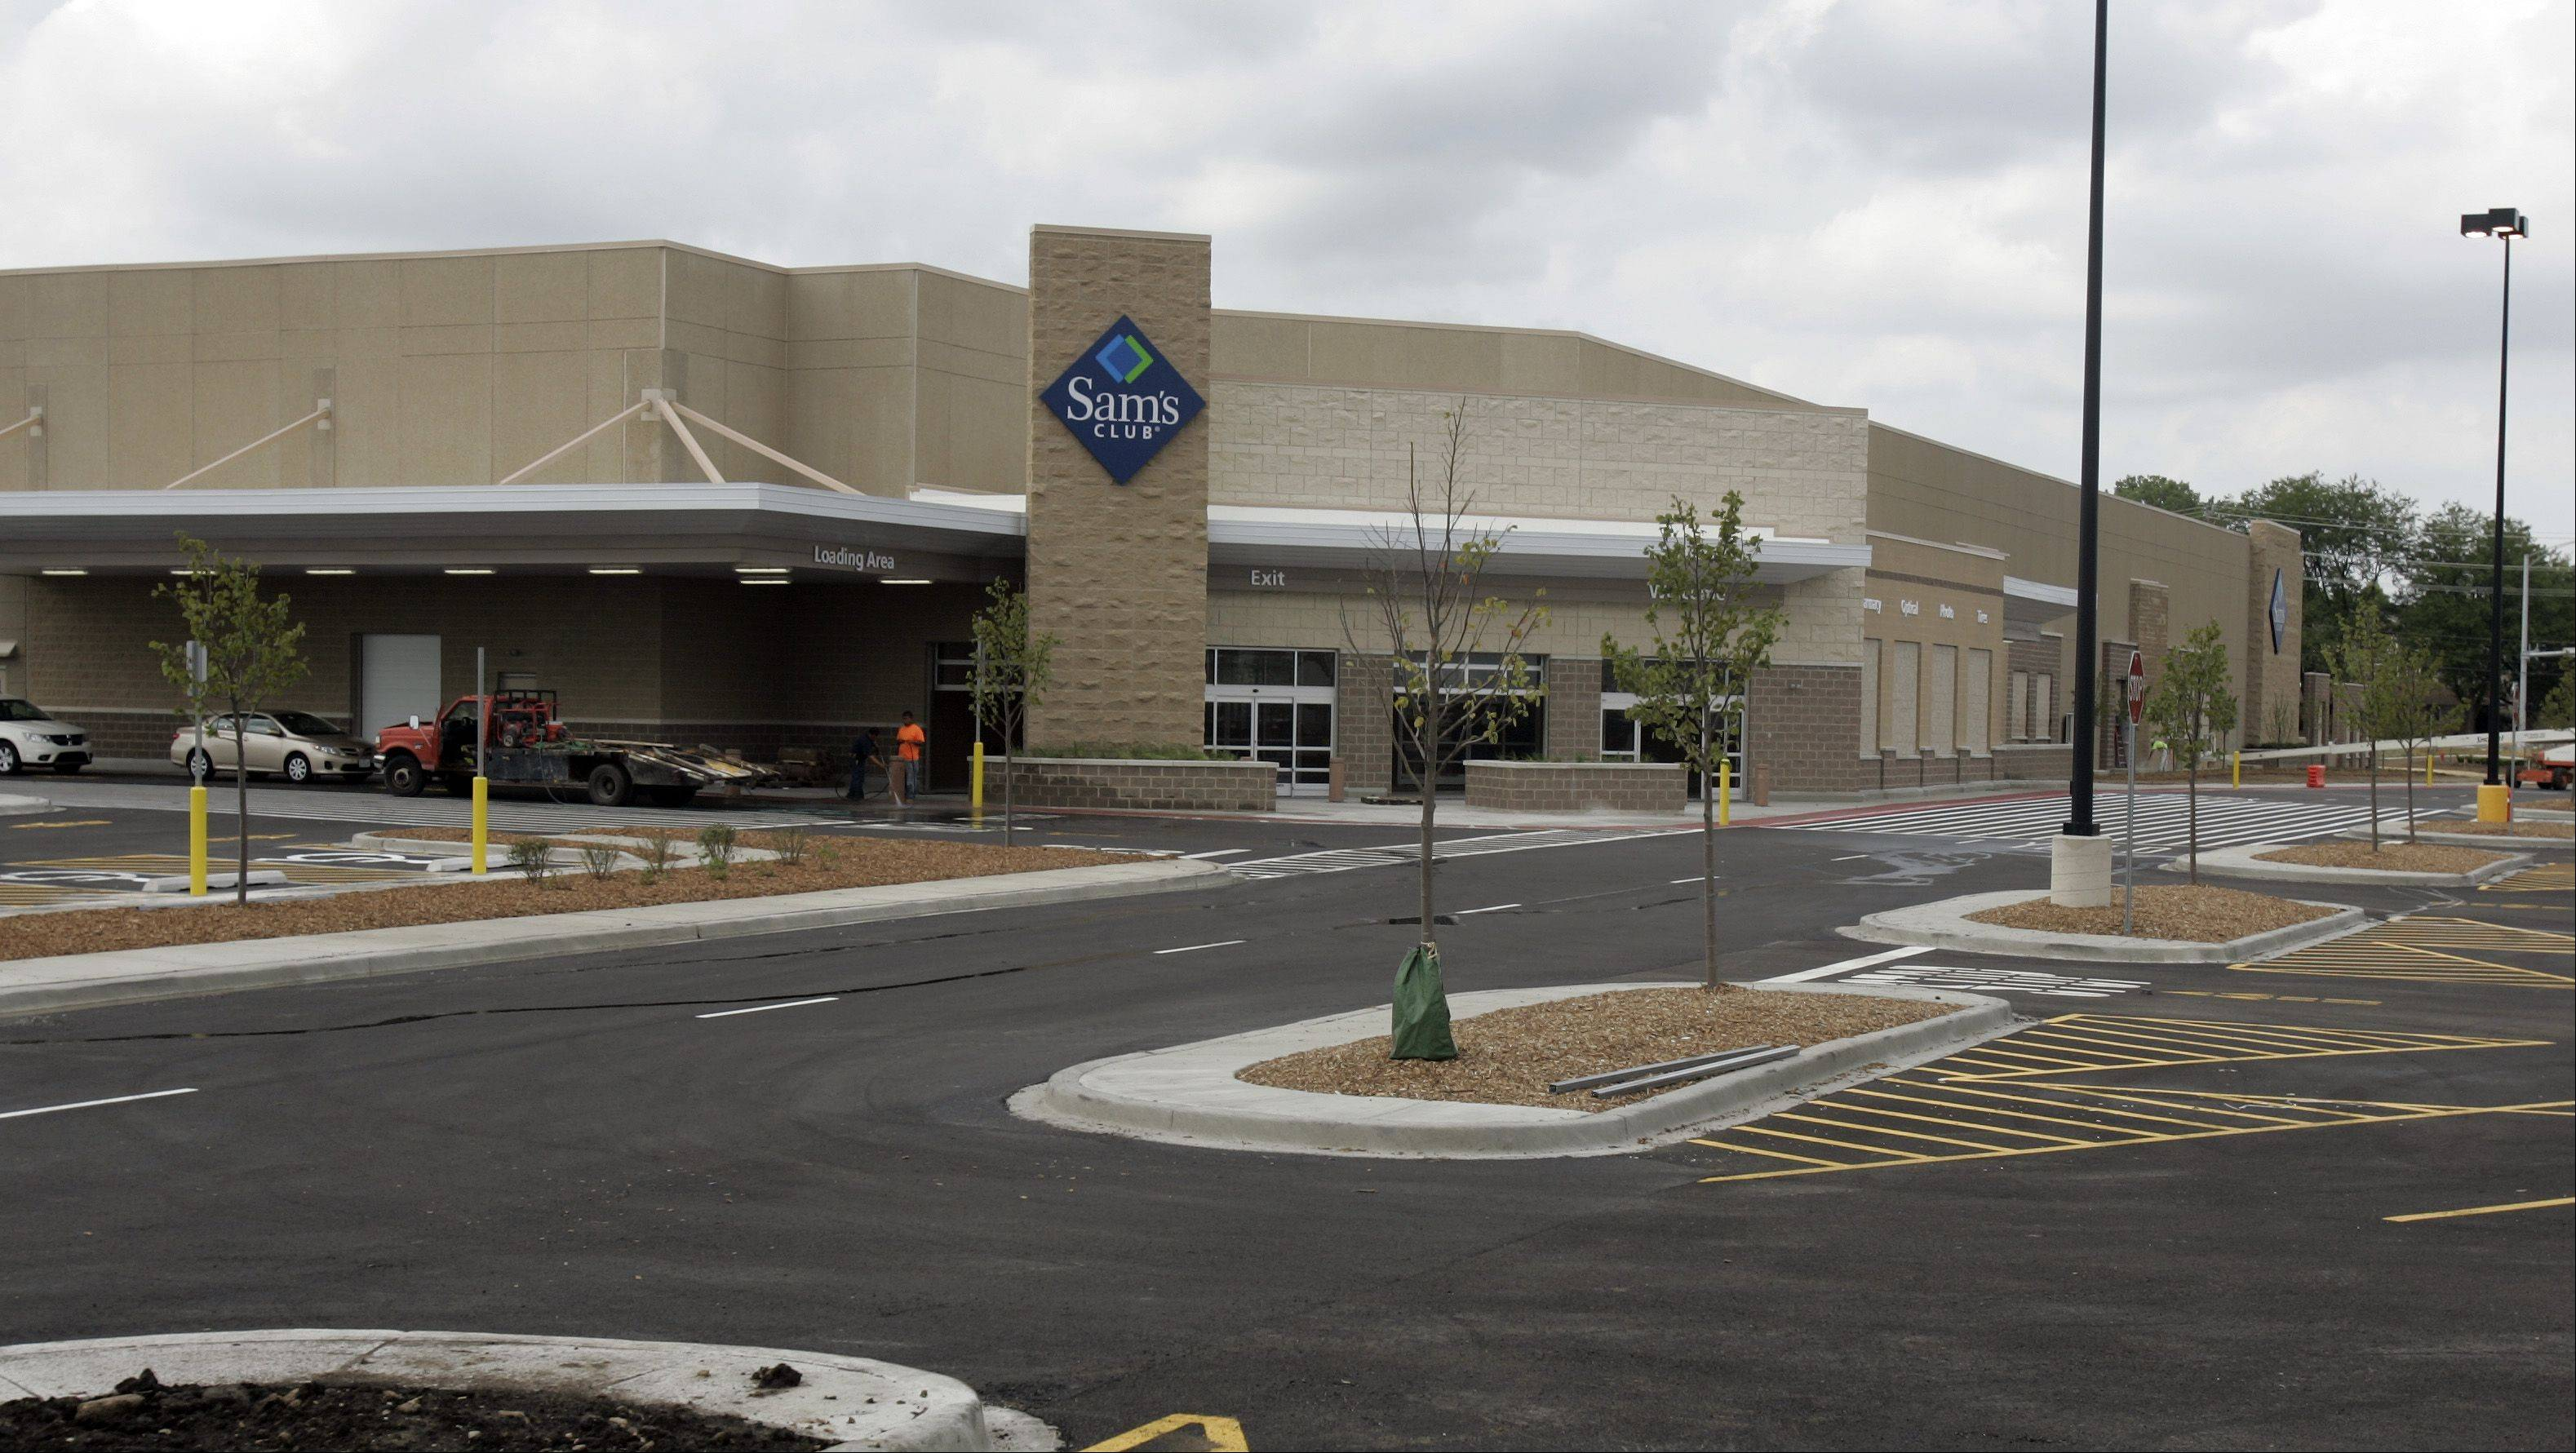 Sam�s Club in Elgin is set to open later this summer and is preparing to hire almost 200 employees. A temporary hiring center has been set up in South Elgin to collect applications for a range of positions, including full-time, part-time and supervisor jobs. Most employees will start this month to get the store ready for its grand opening.